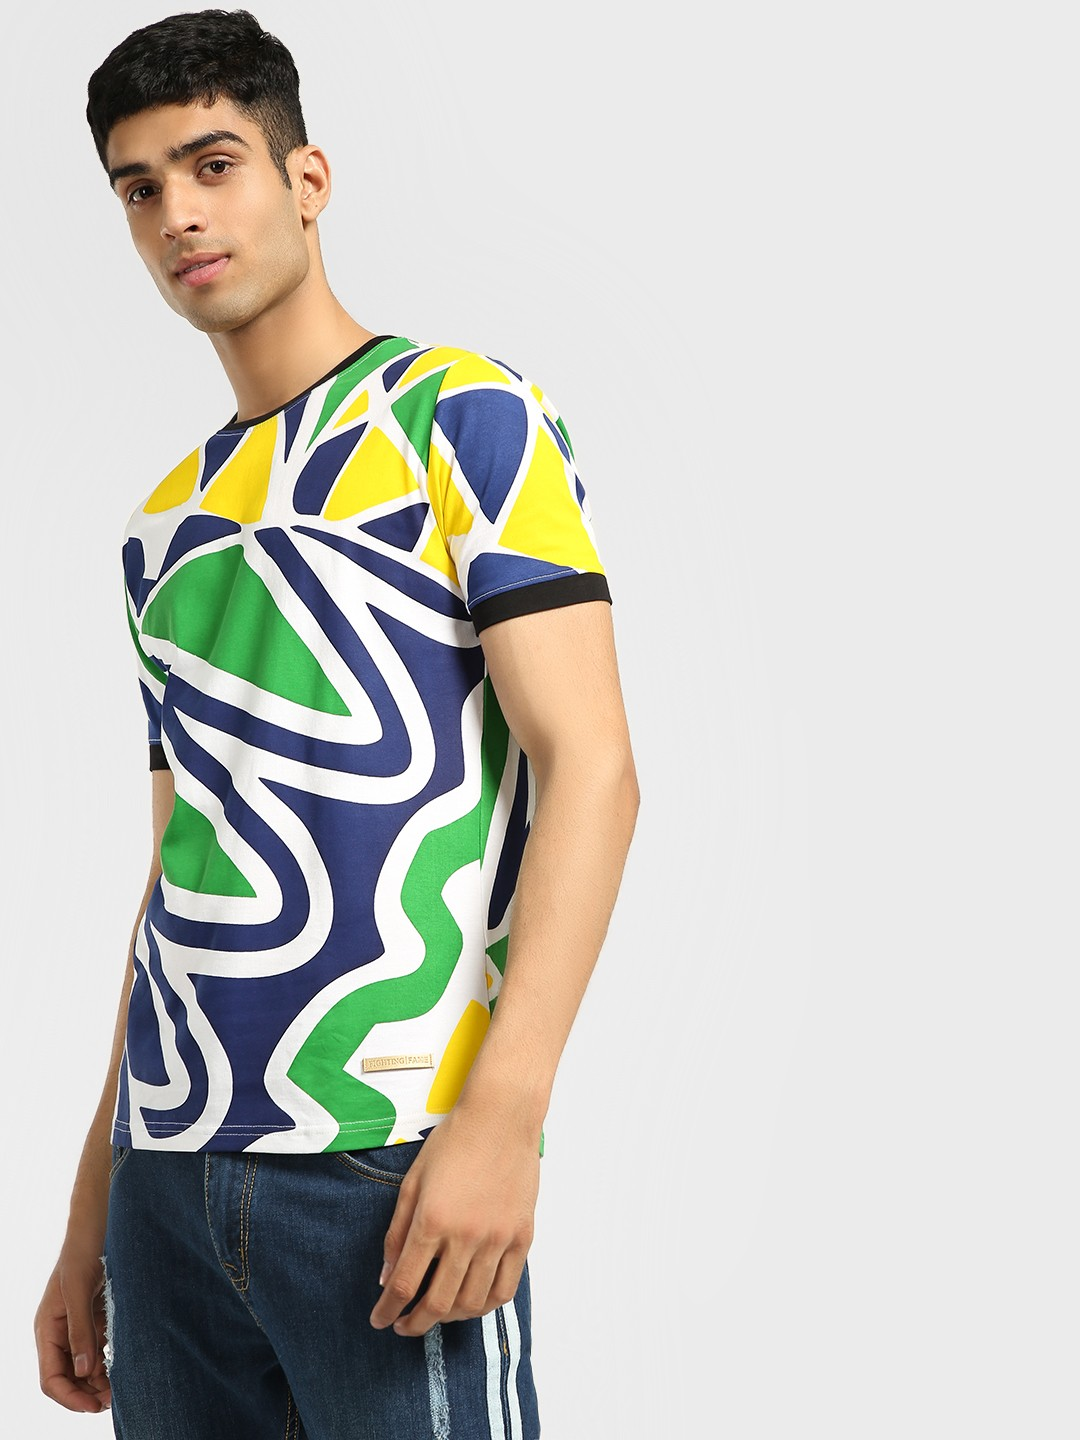 Fighting Fame Green Colour Block Abstract Print T-Shirt 1